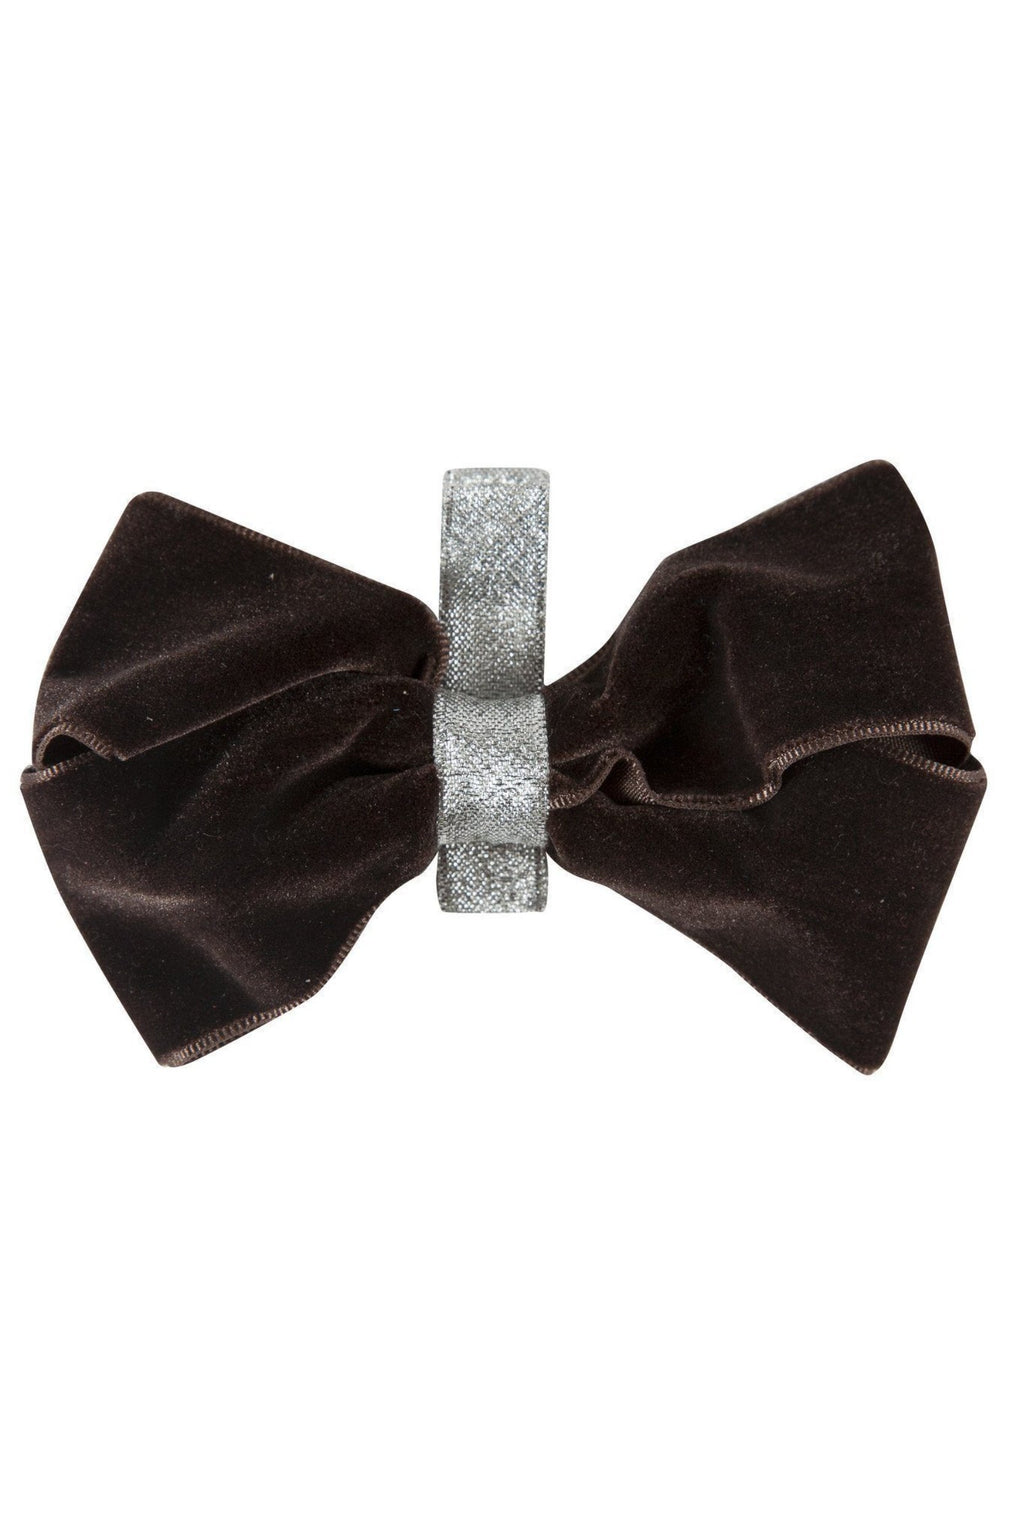 Heather Velvet Clip - Brown/Silver - PROJECT 6, modest fashion